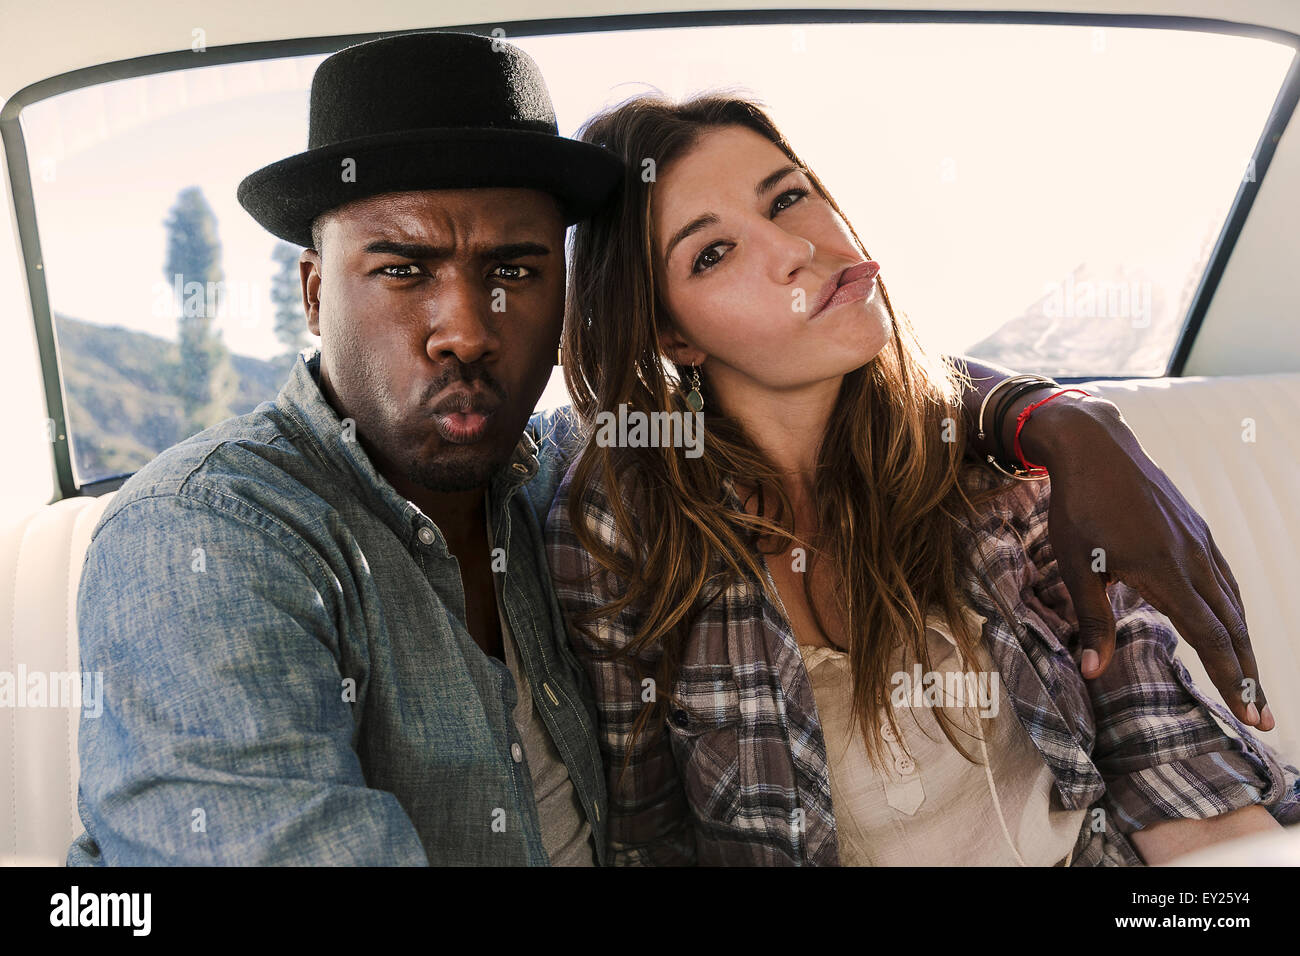 Portrait of couple pulling faces in back seat of car - Stock Image